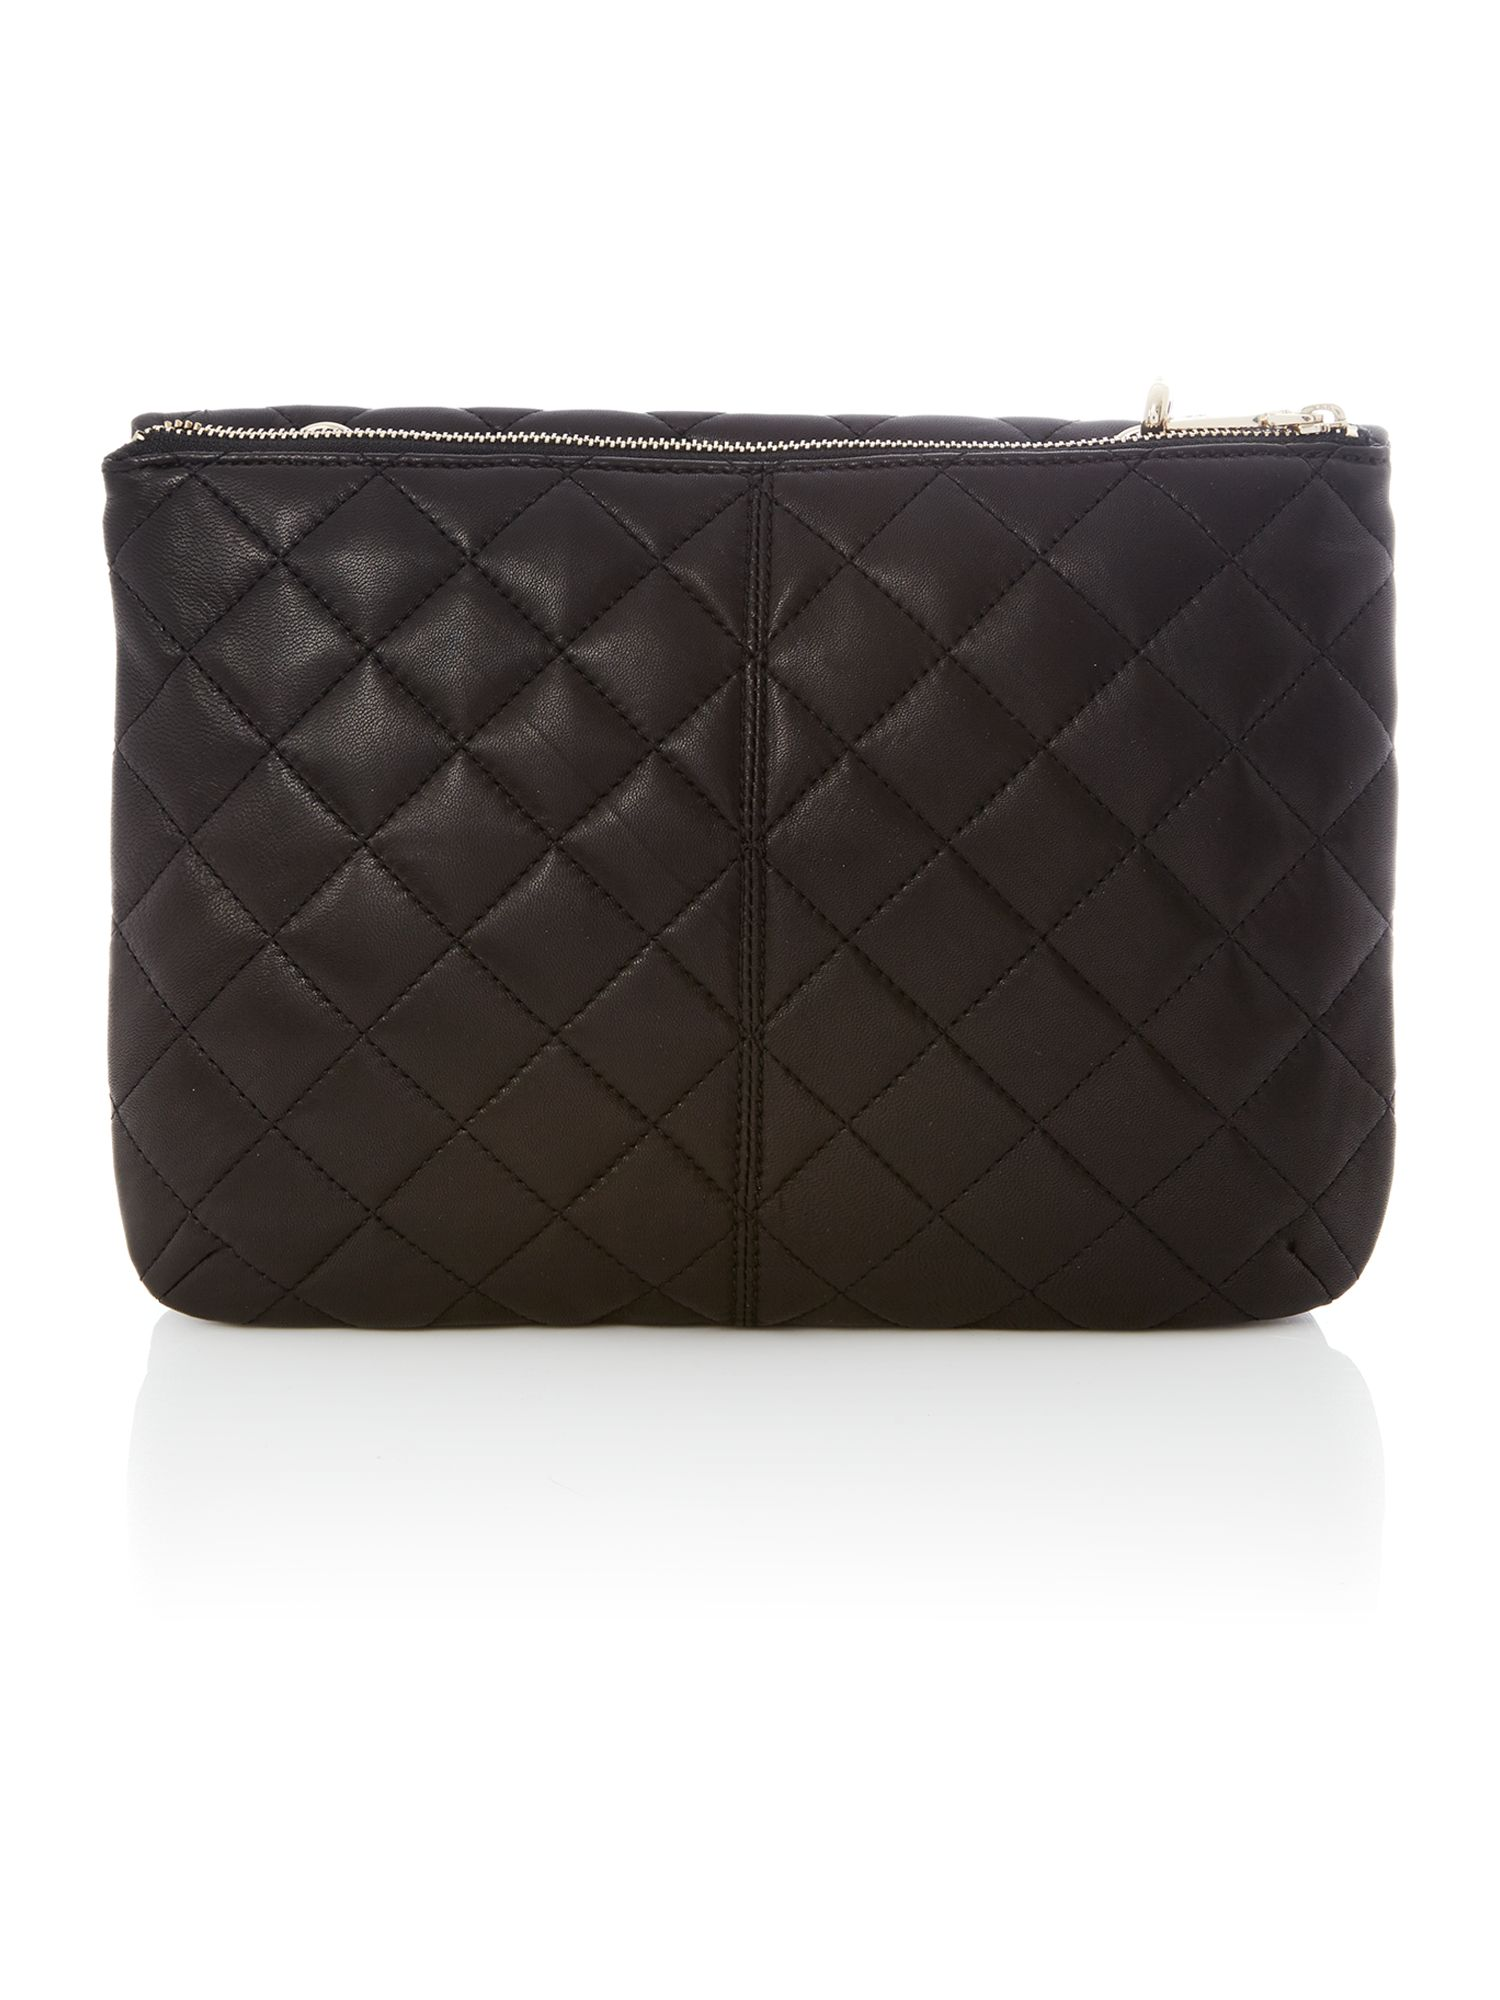 Gainsvoort black large flap crossbody